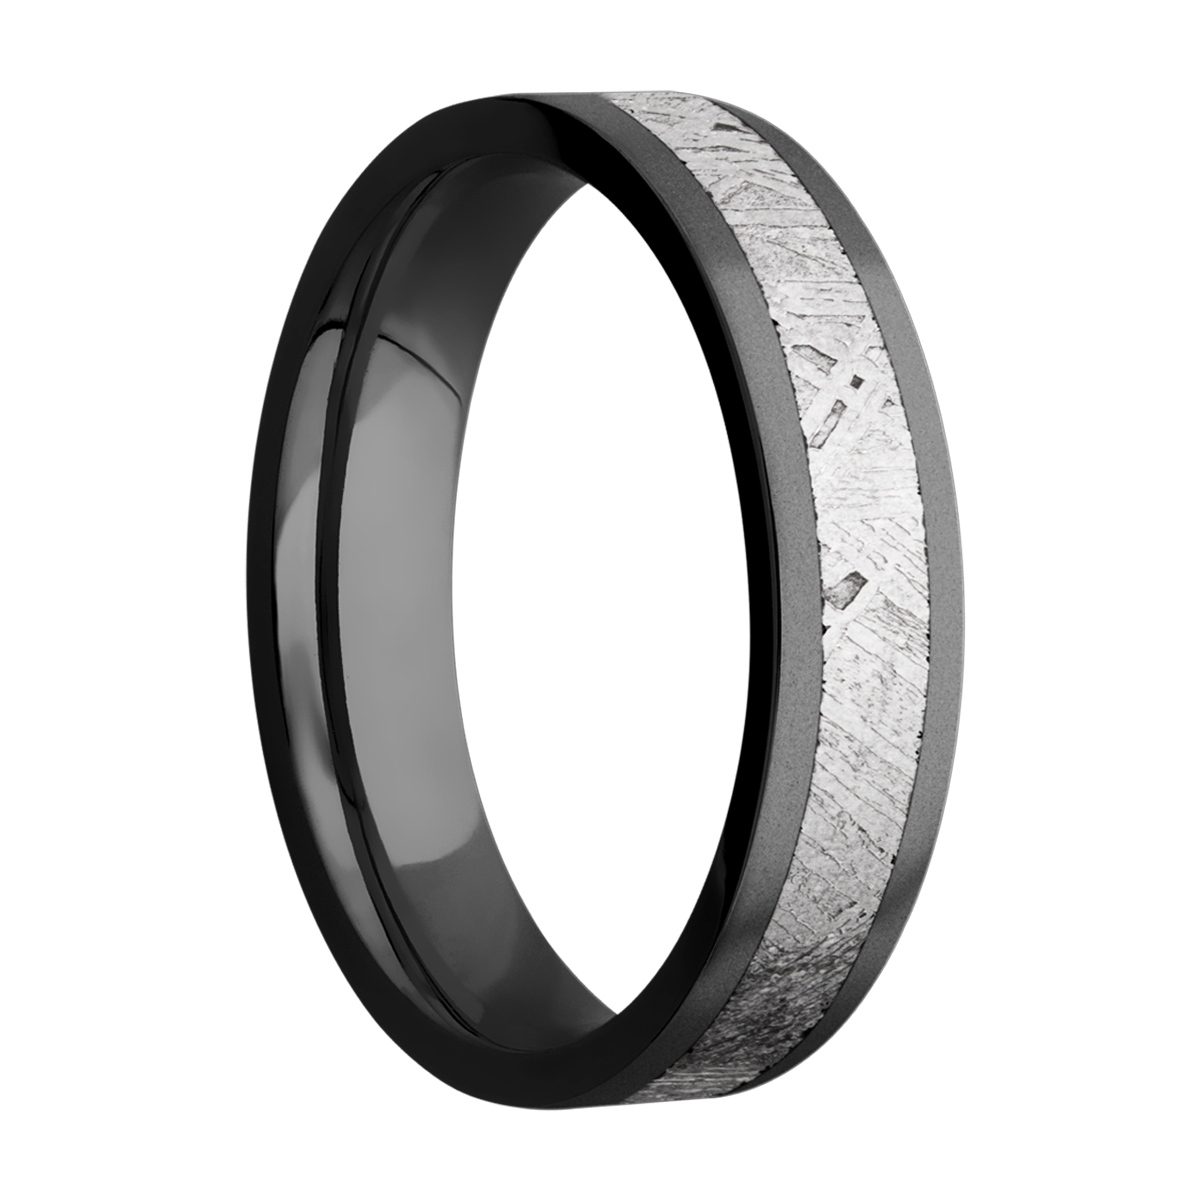 Lashbrook Z5F13/METEORITE Zirconium Wedding Ring or Band Alternative View 1